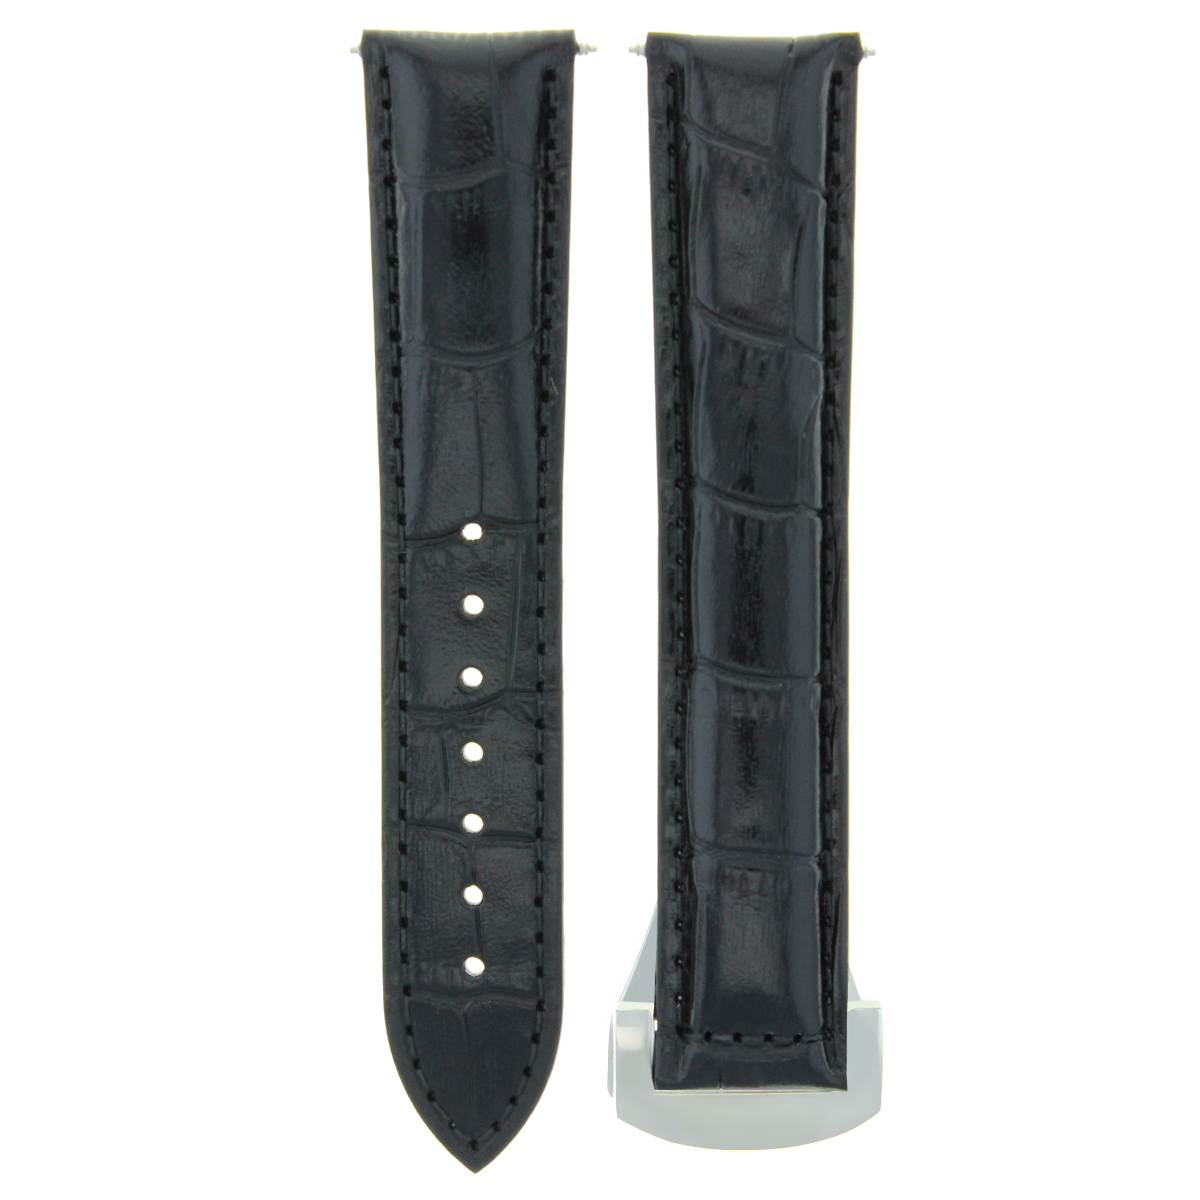 20MM LEATHER STRAP WATCH BAND FOR  ORIS ARTIX CHRONO WATCH DEPLOYMENT CLASP